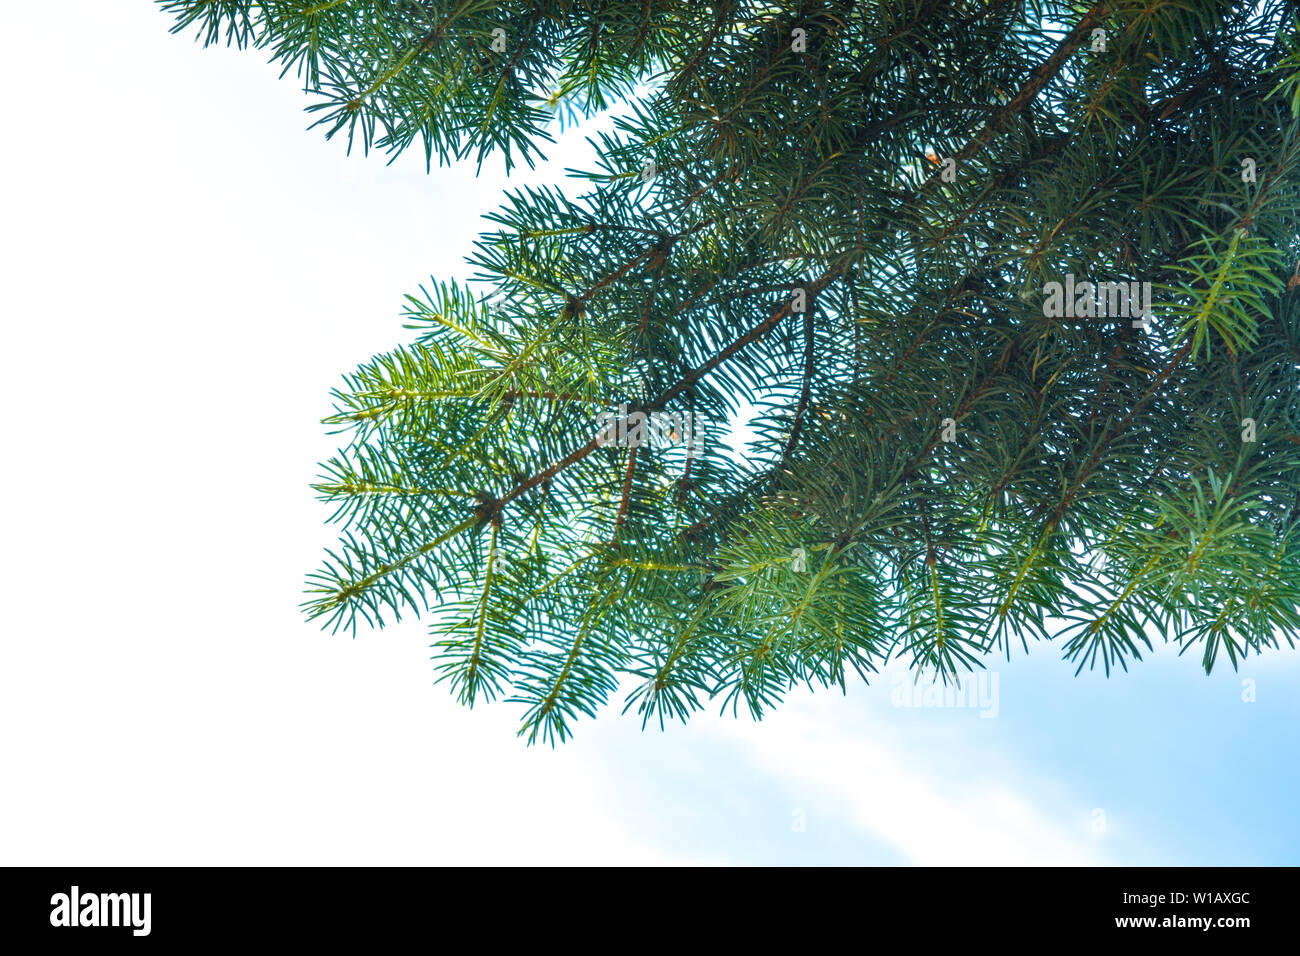 Close-up of blue spruce fir tree branches on blue sky background - Stock Image